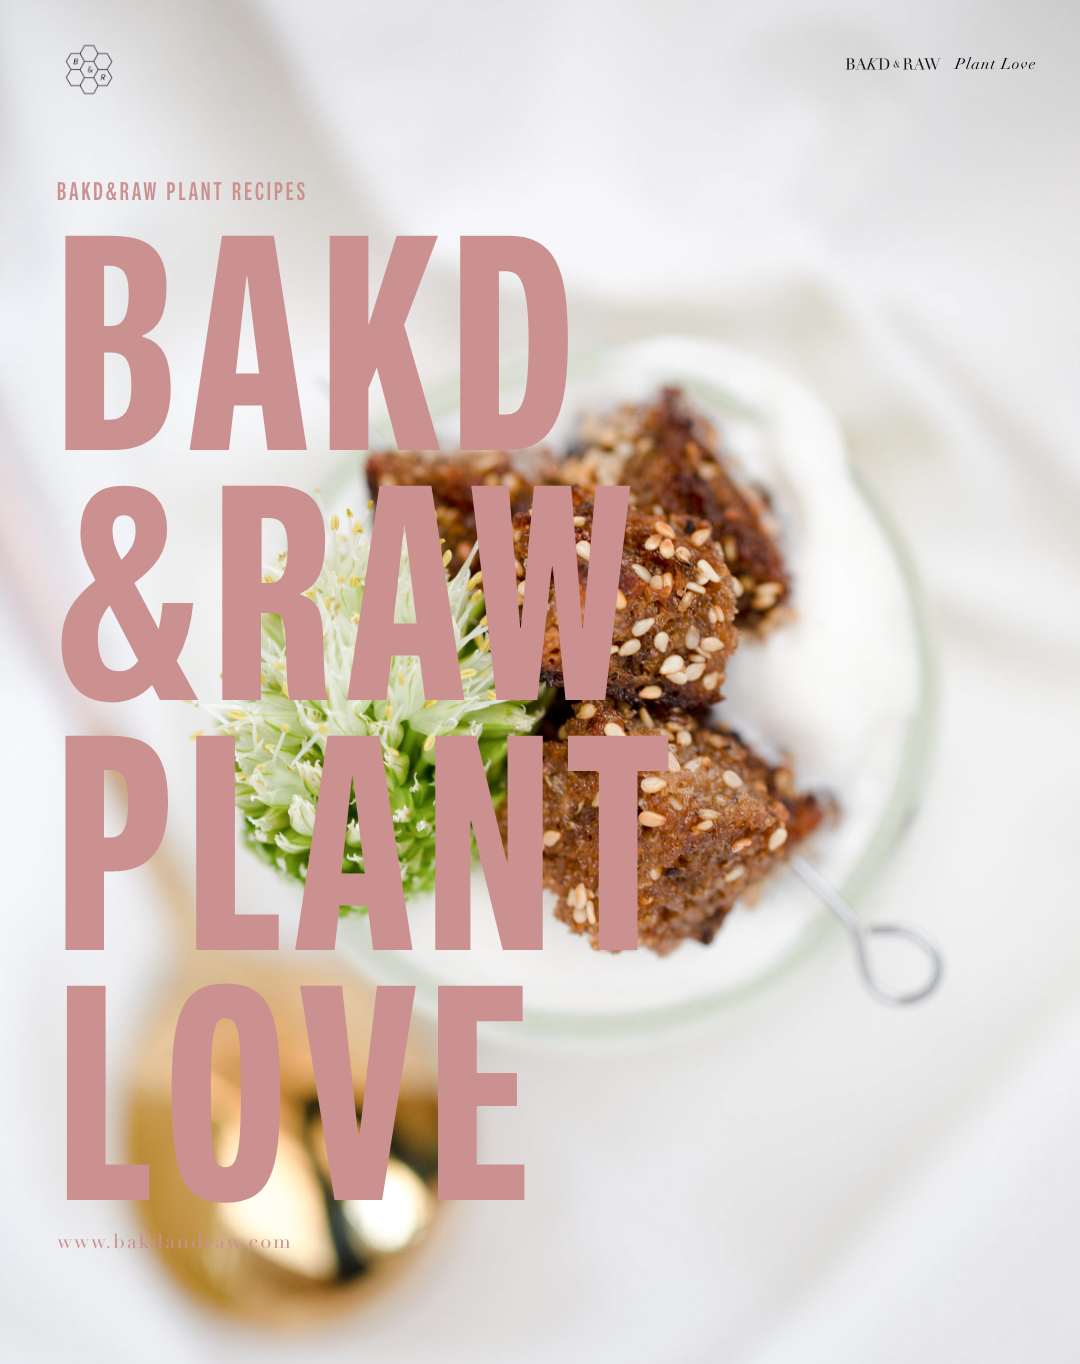 White Asparagus Soup with Soy froth by Bakd&Raw